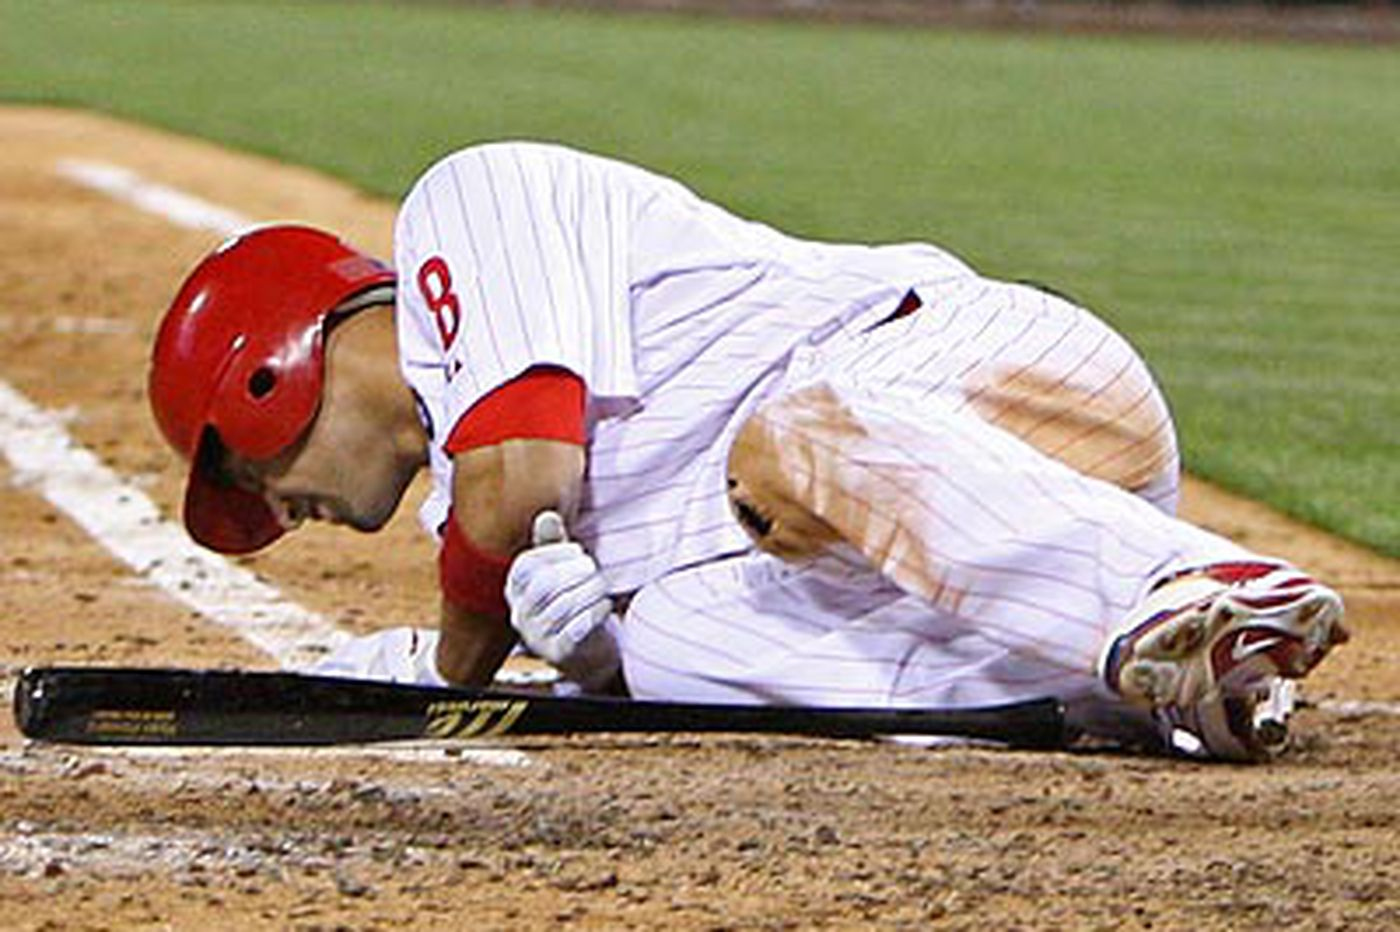 Phillies Notes: Phillies resist putting Victorino on disabled list